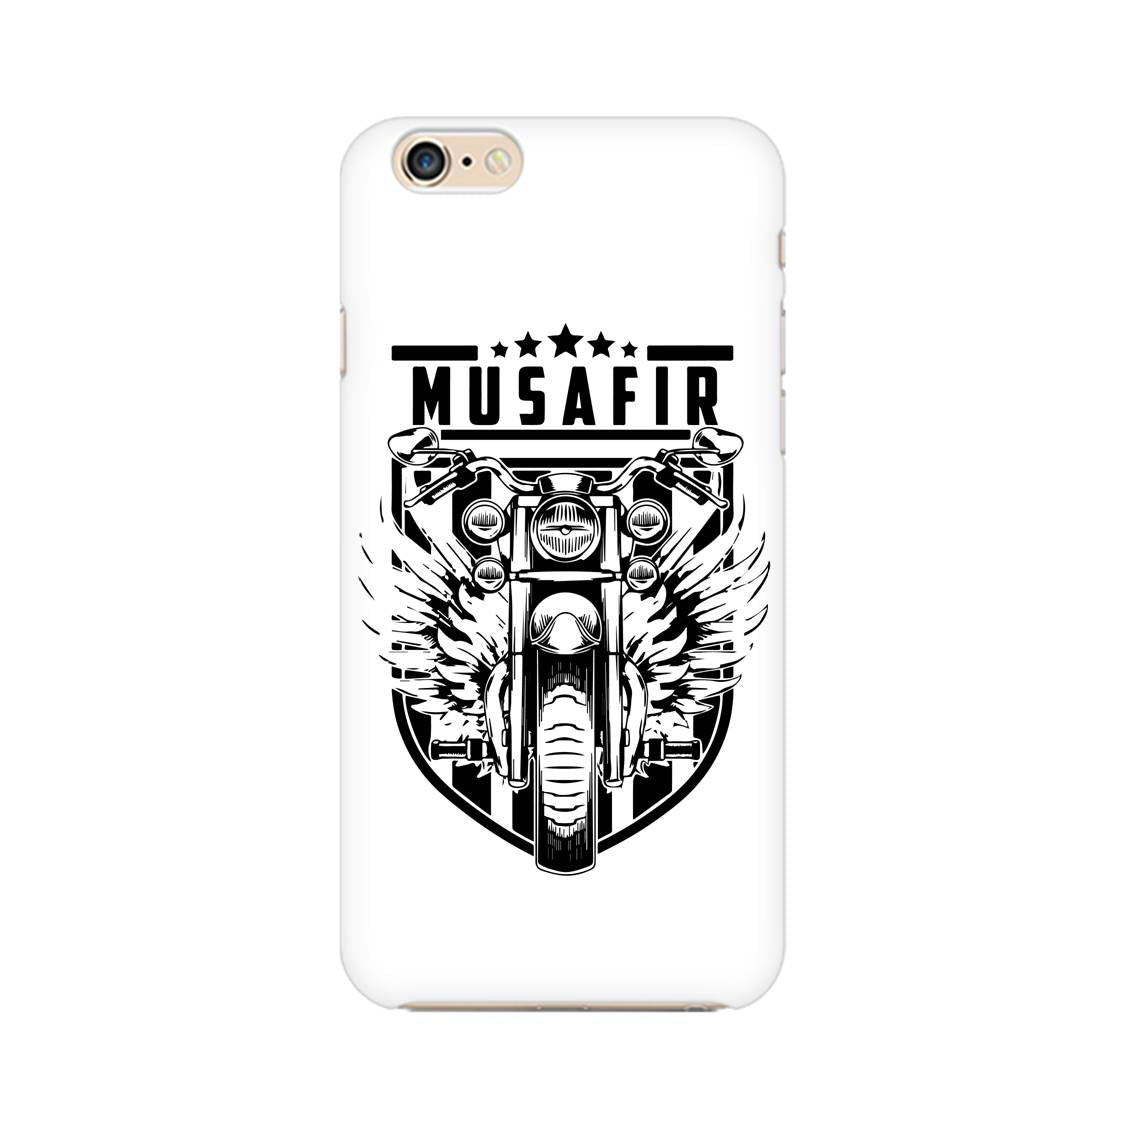 Musafir Printed Phone Cover